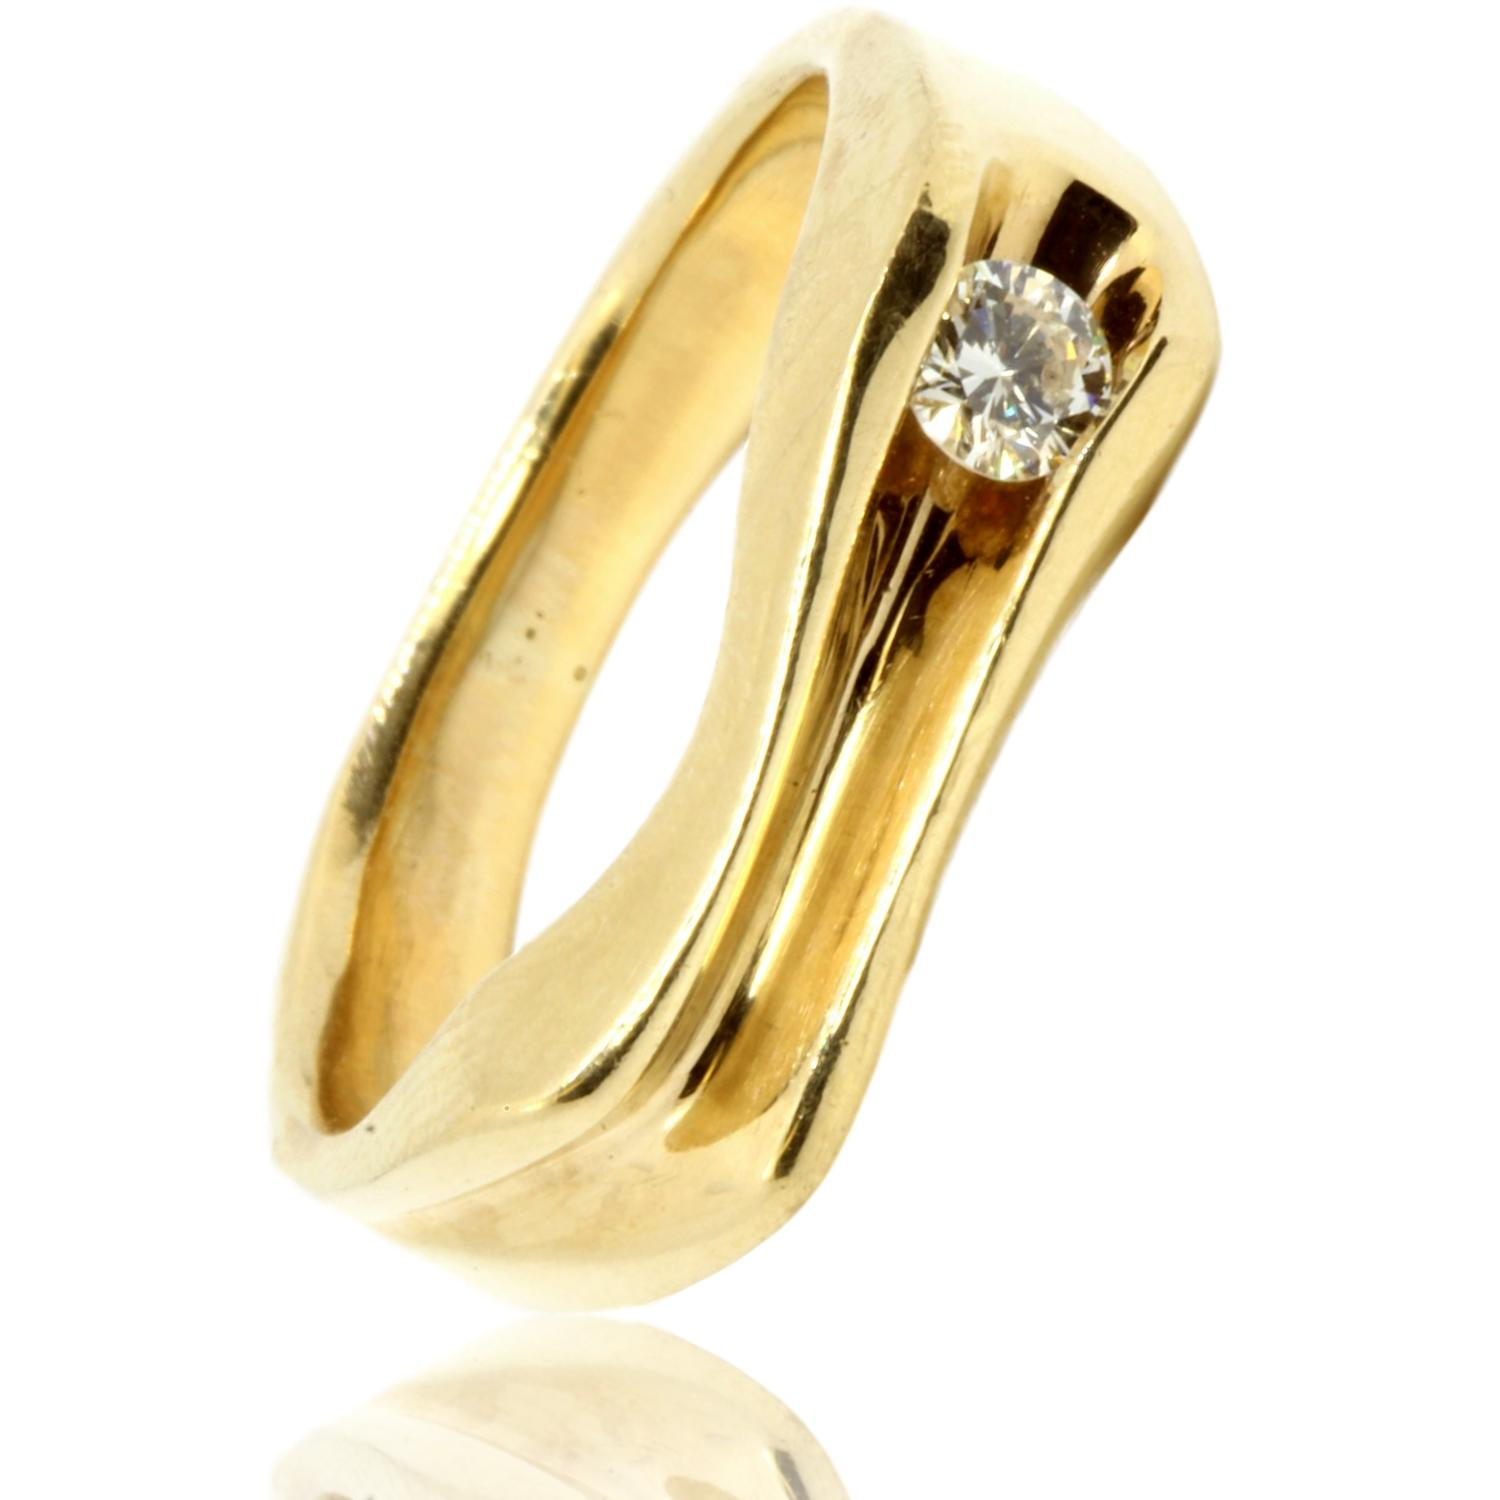 Lawrence-Galleries-Mens-14K-Gold-.2ct.-Diamond-Ring_85161A.jpg